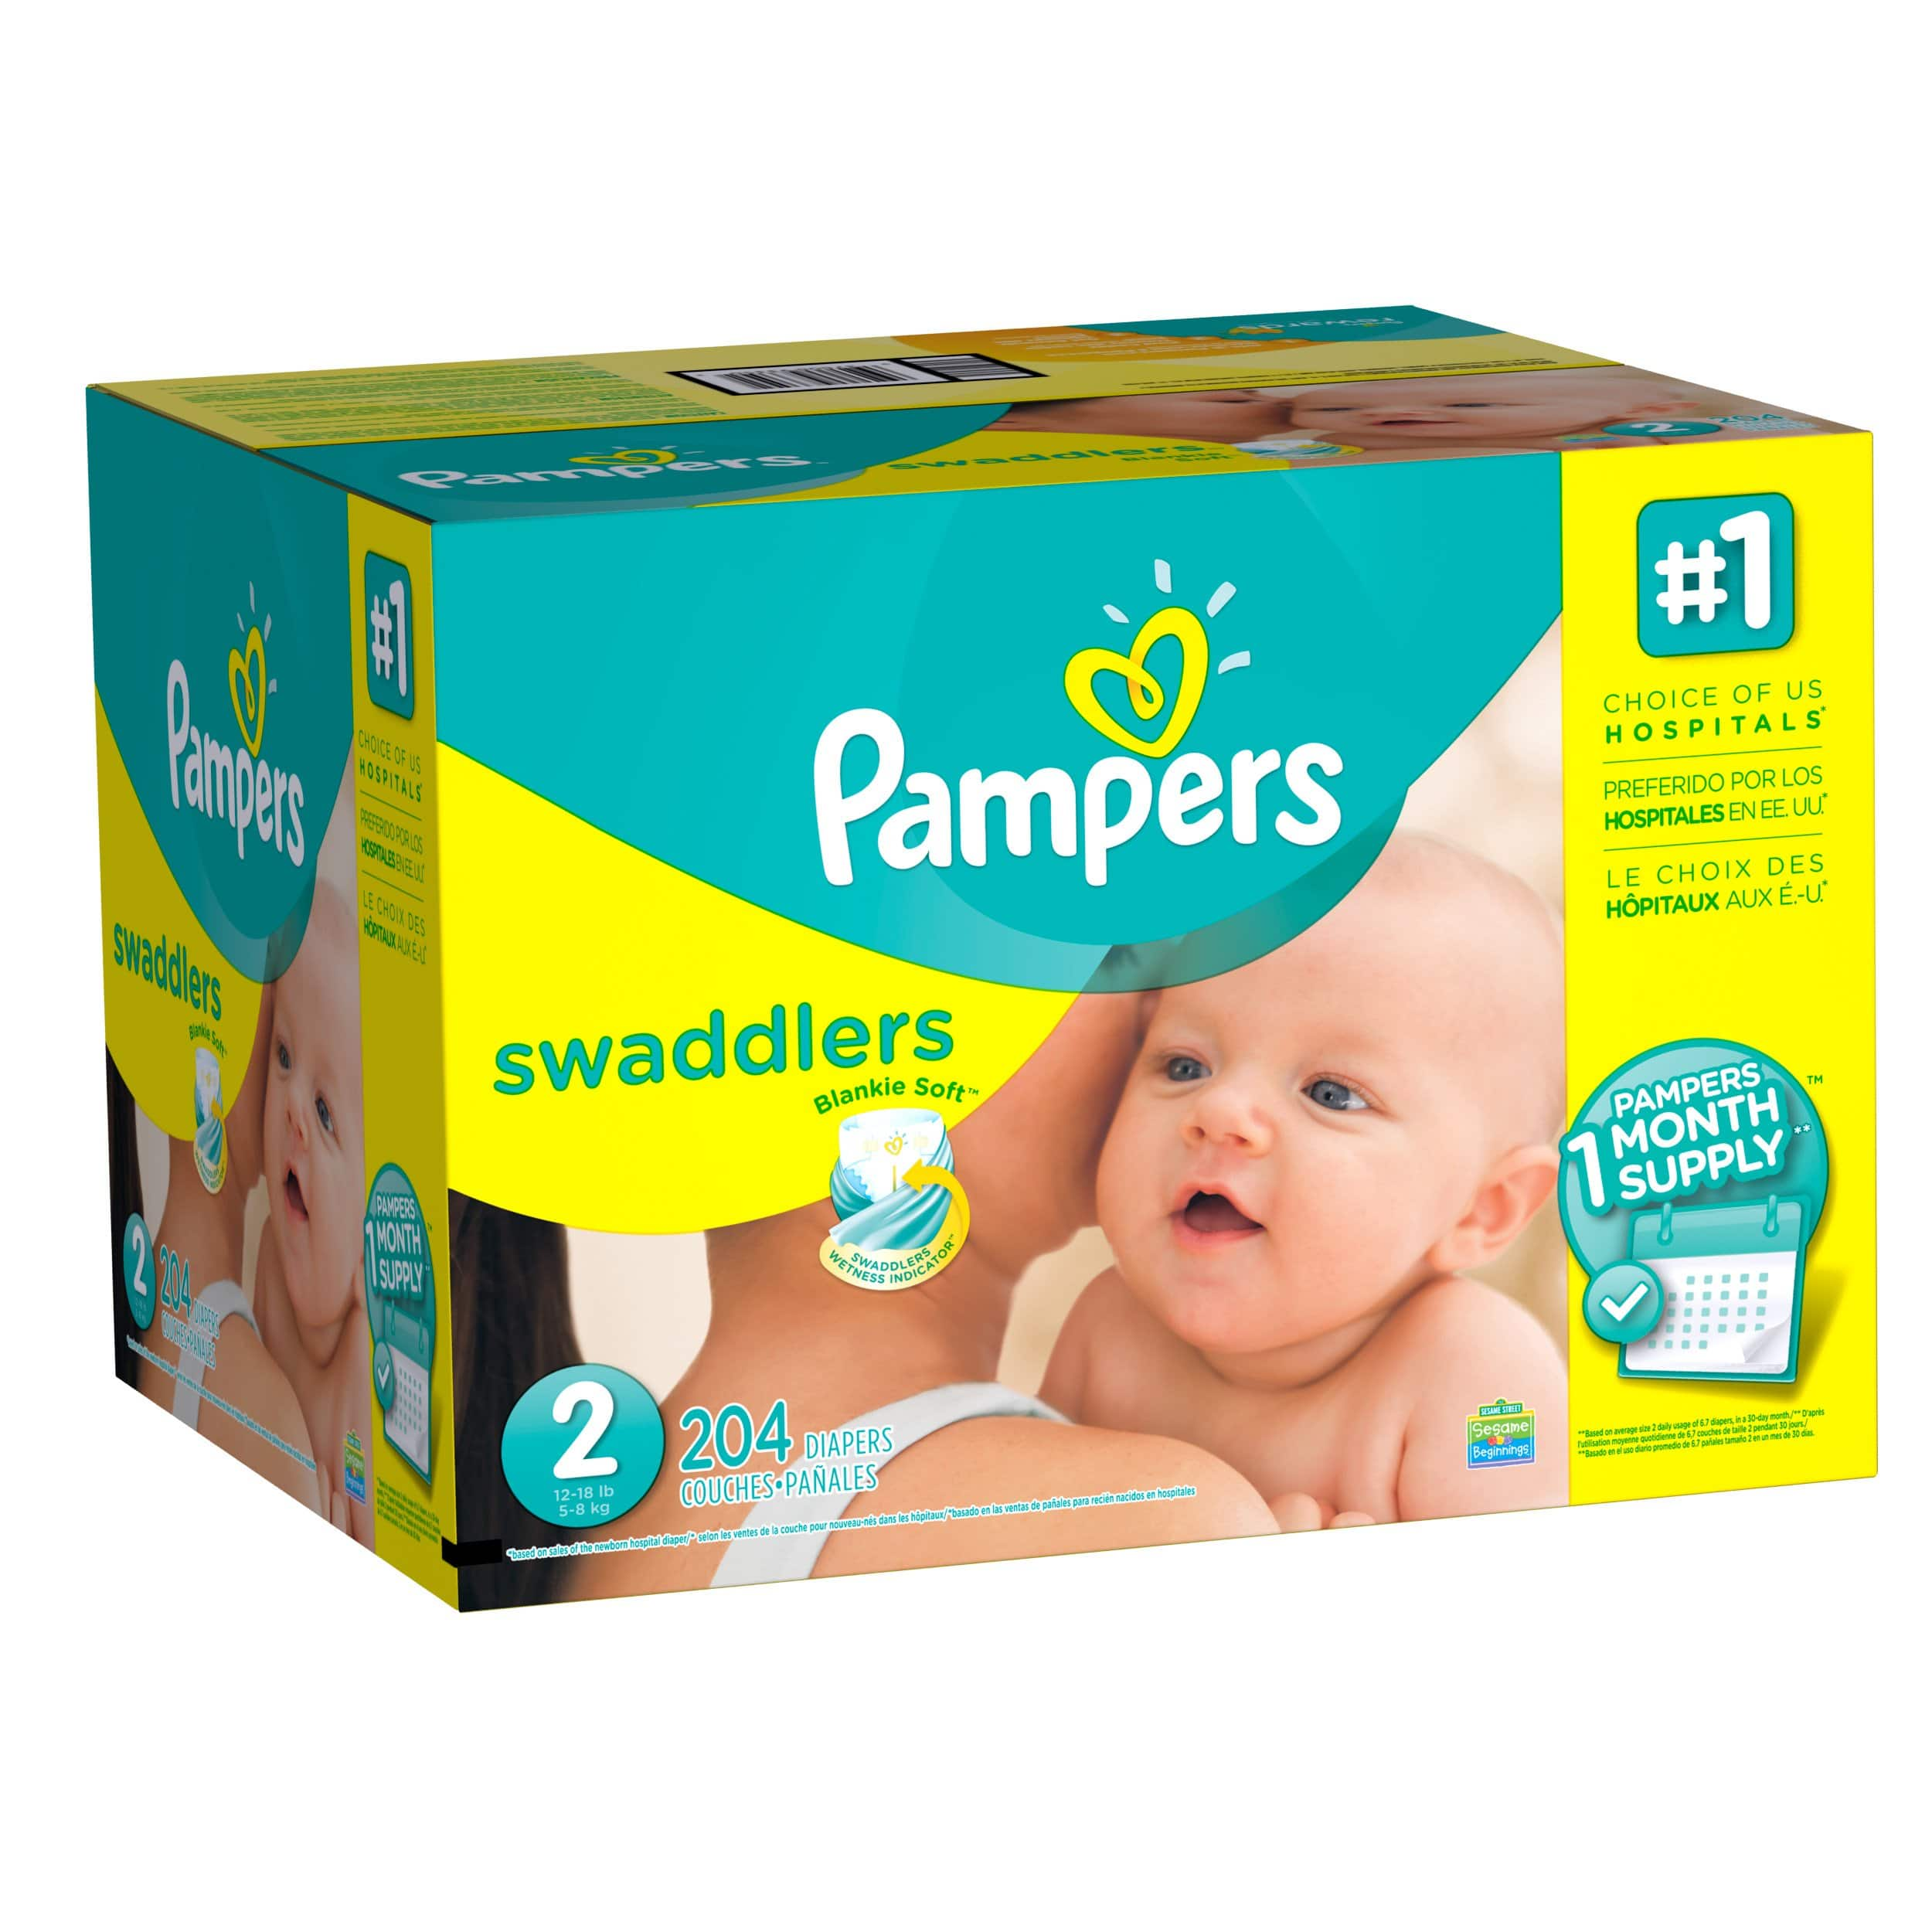 2 Pk Pampers Swaddlers Diapers Size 1 6 20 Gc From 7920